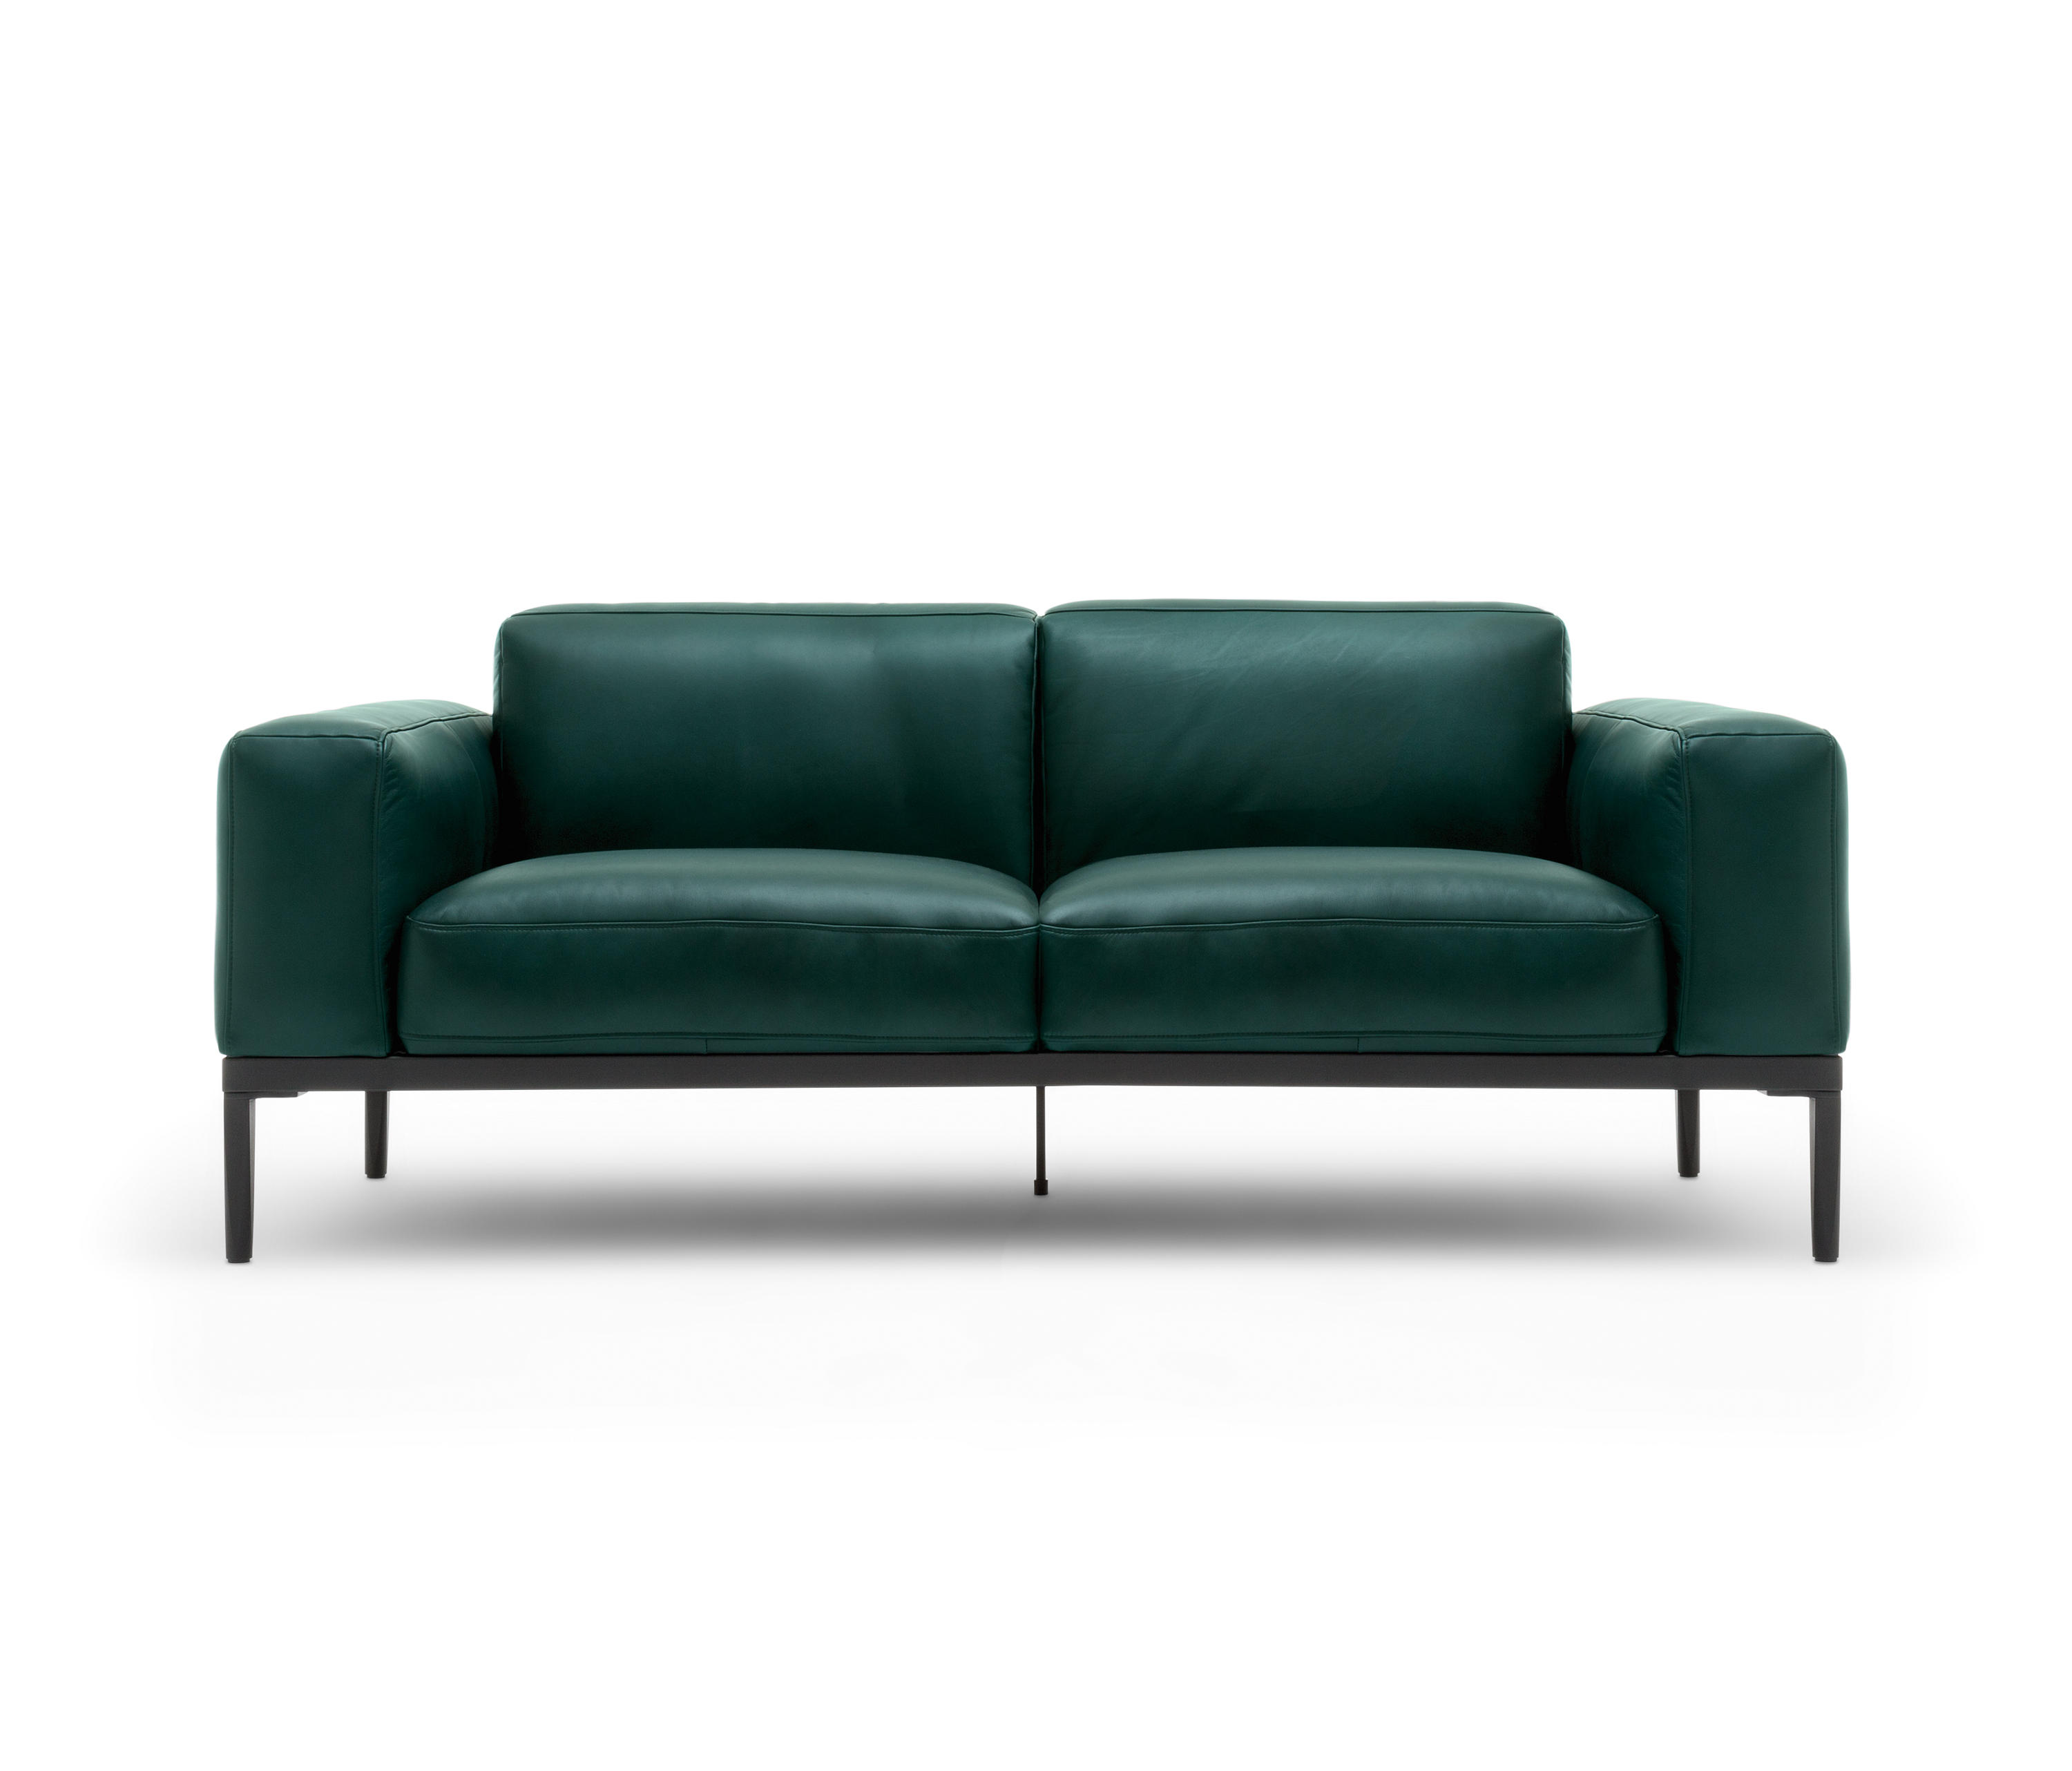 Freistil Ecksofa Freistil Sofa Samt